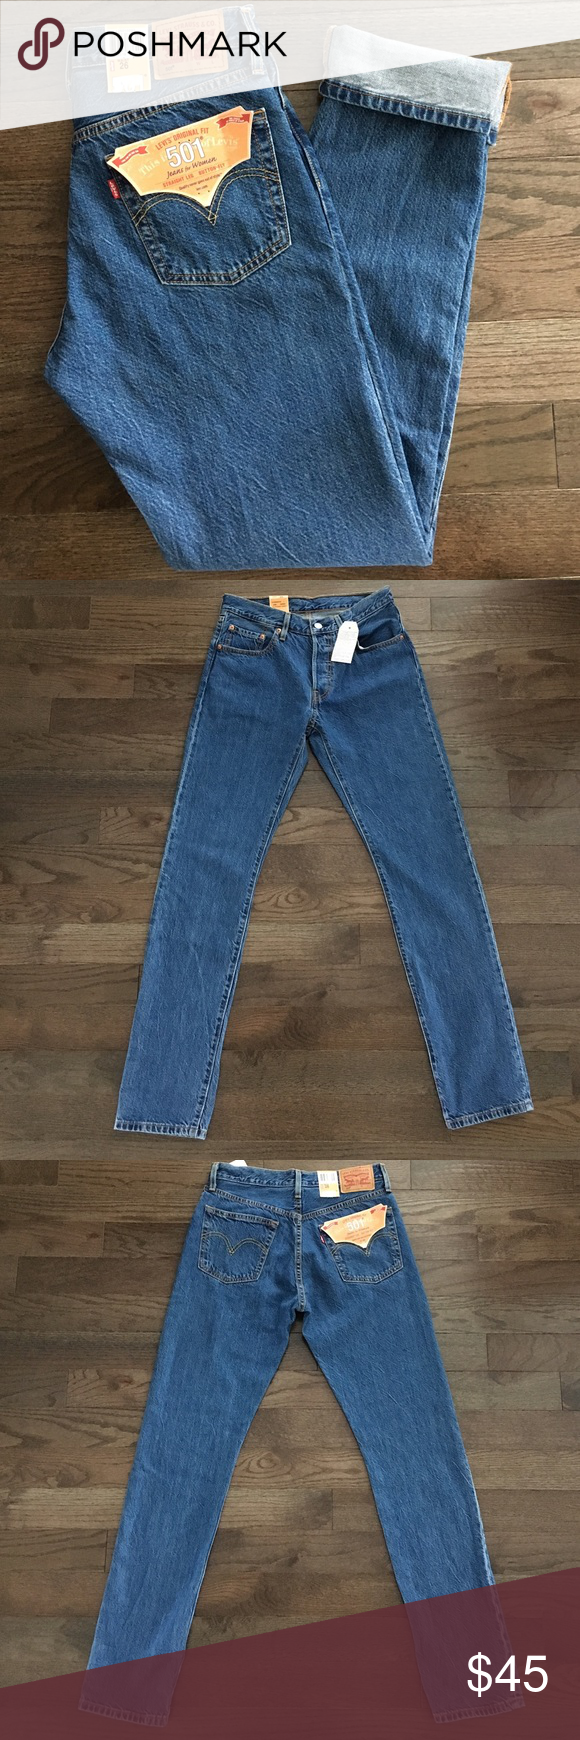 5b0b942c123 Levi's 501 Original Fit Button Fly Straight Leg 26 Levi's Original Fit 501  jeans for women. New with tags. W26xL32. Button Fly. Straight Leg. . Medium  wash.